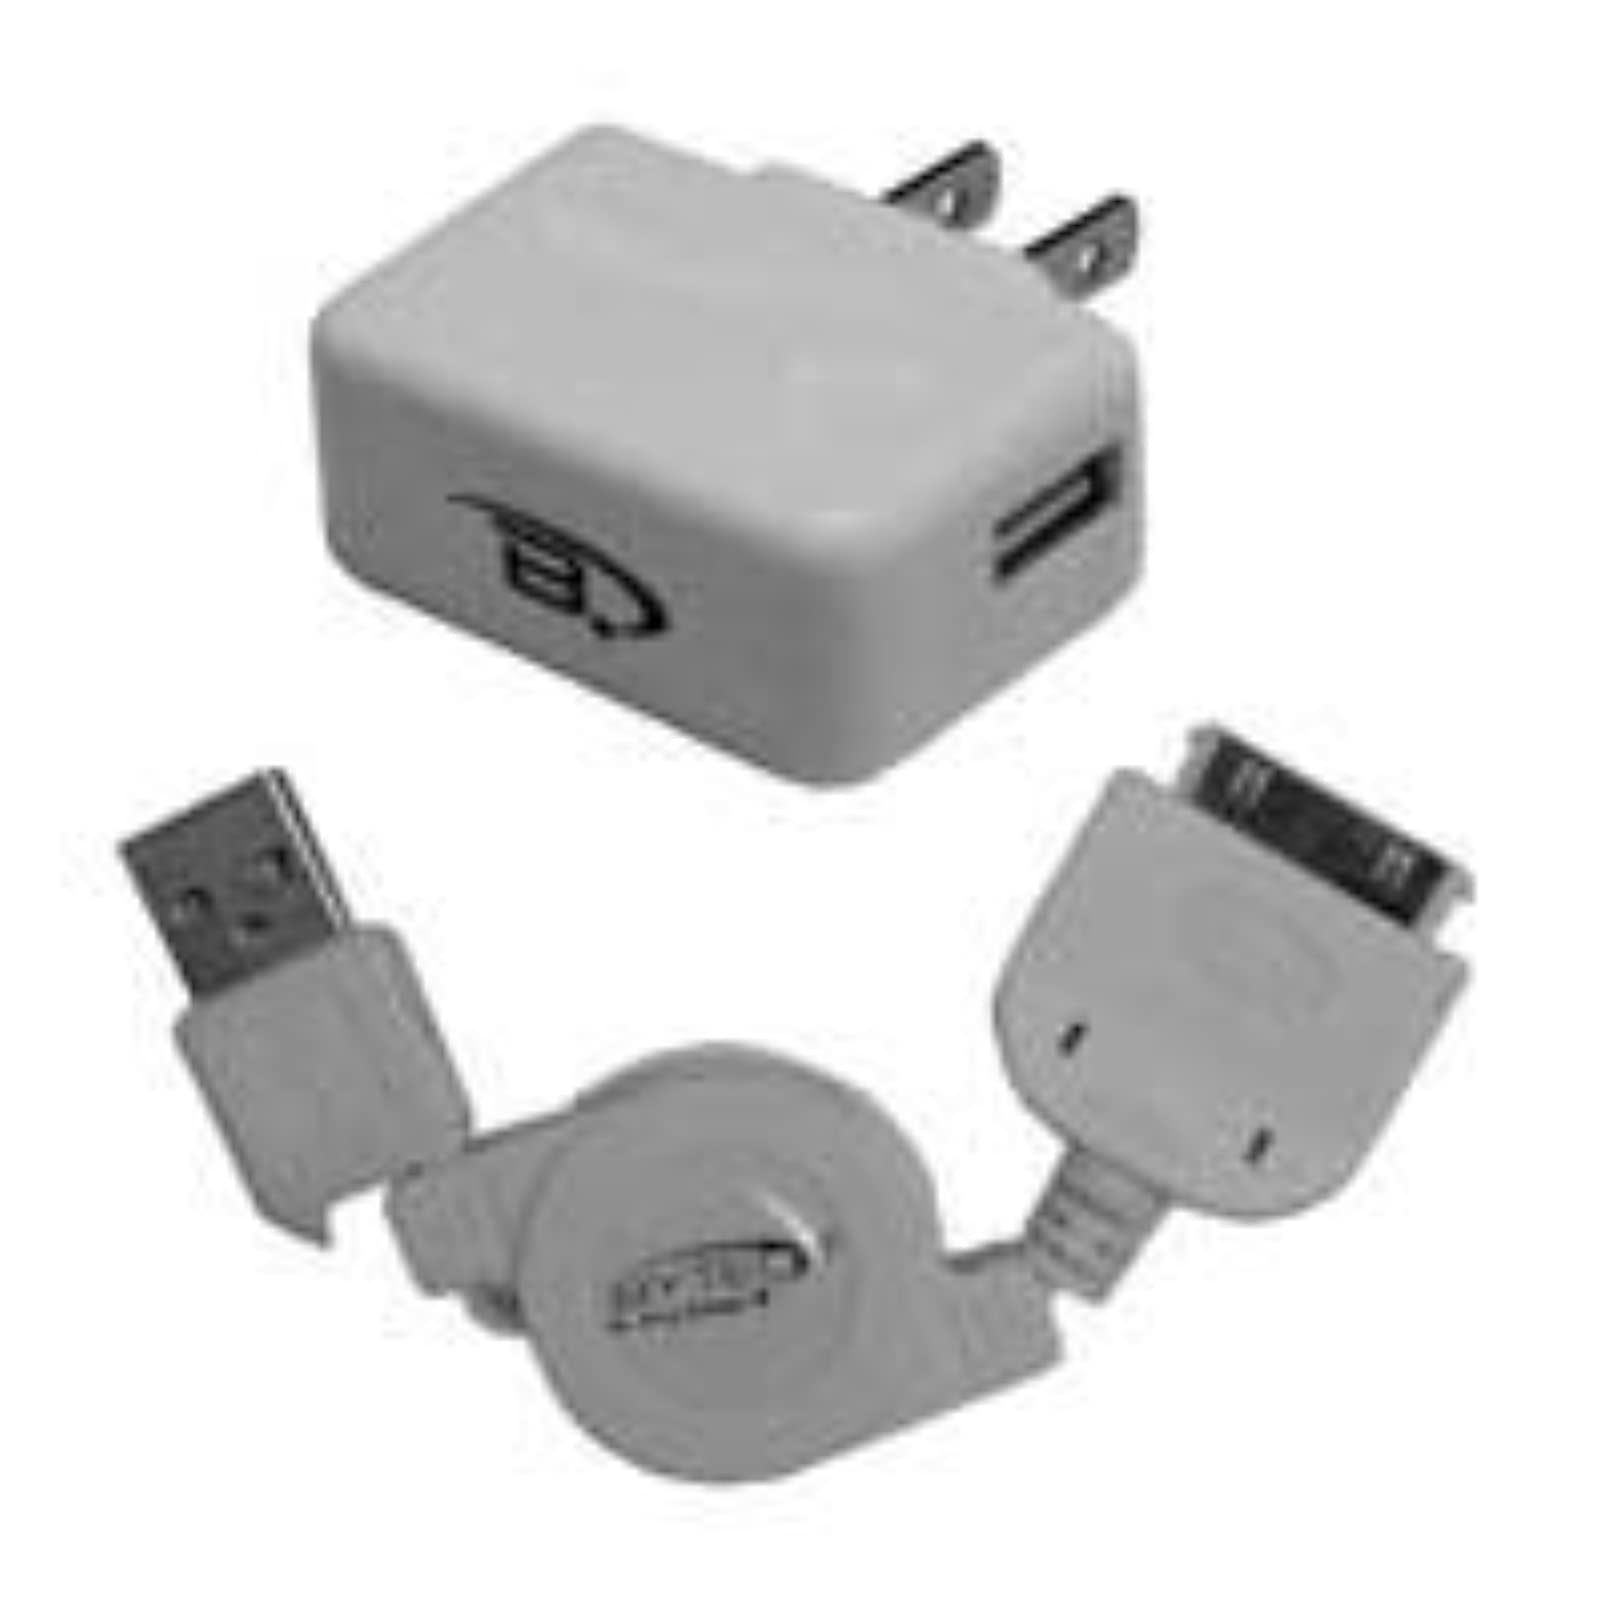 Bytech Tcusbiph Ipod/iphone USB Home Charger Kit Wall KSU483